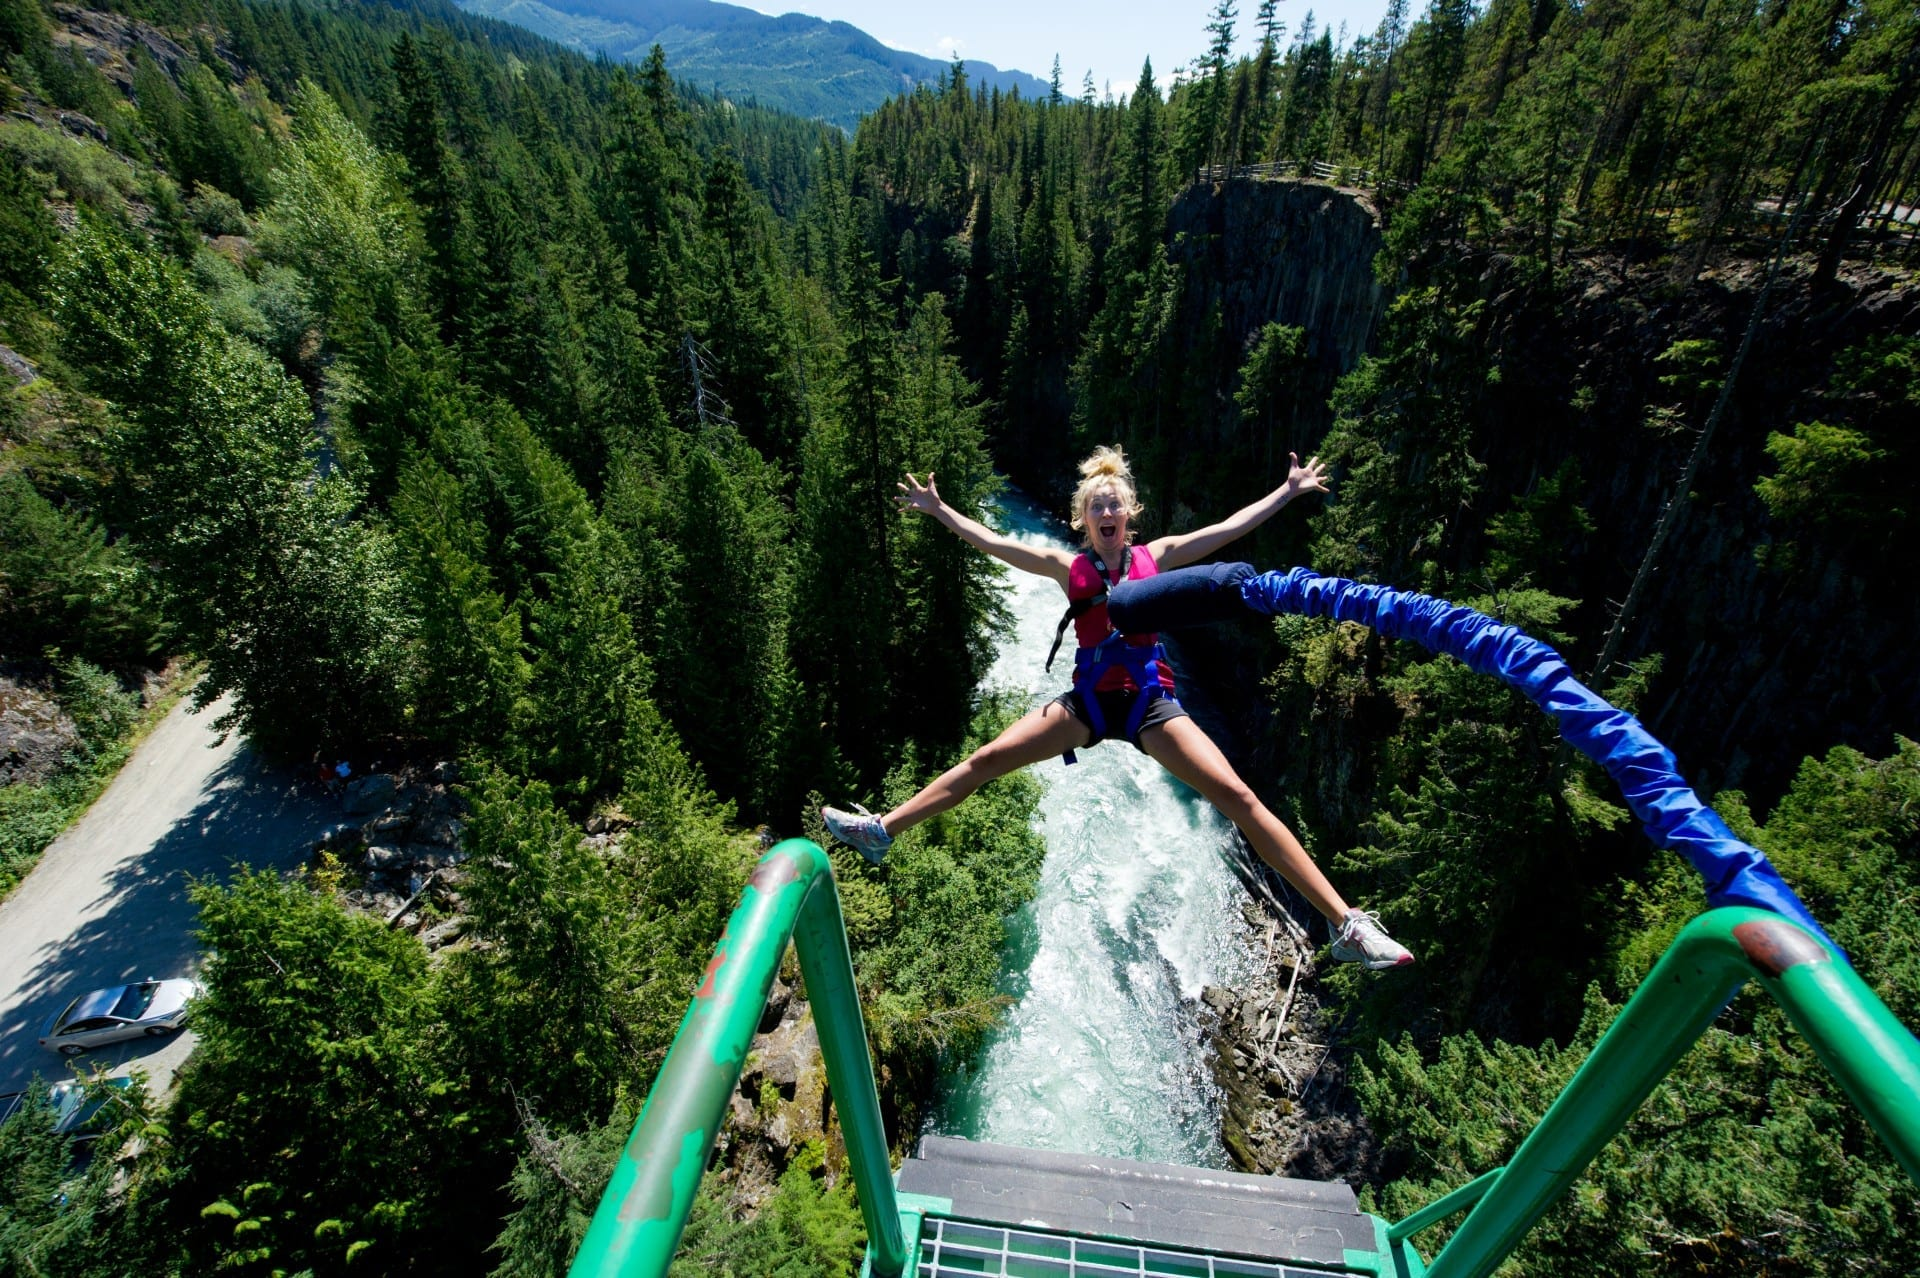 Victoria Falls Hd Wallpaper Bungee Jumping I Experience I Adventure I Whistler Canada